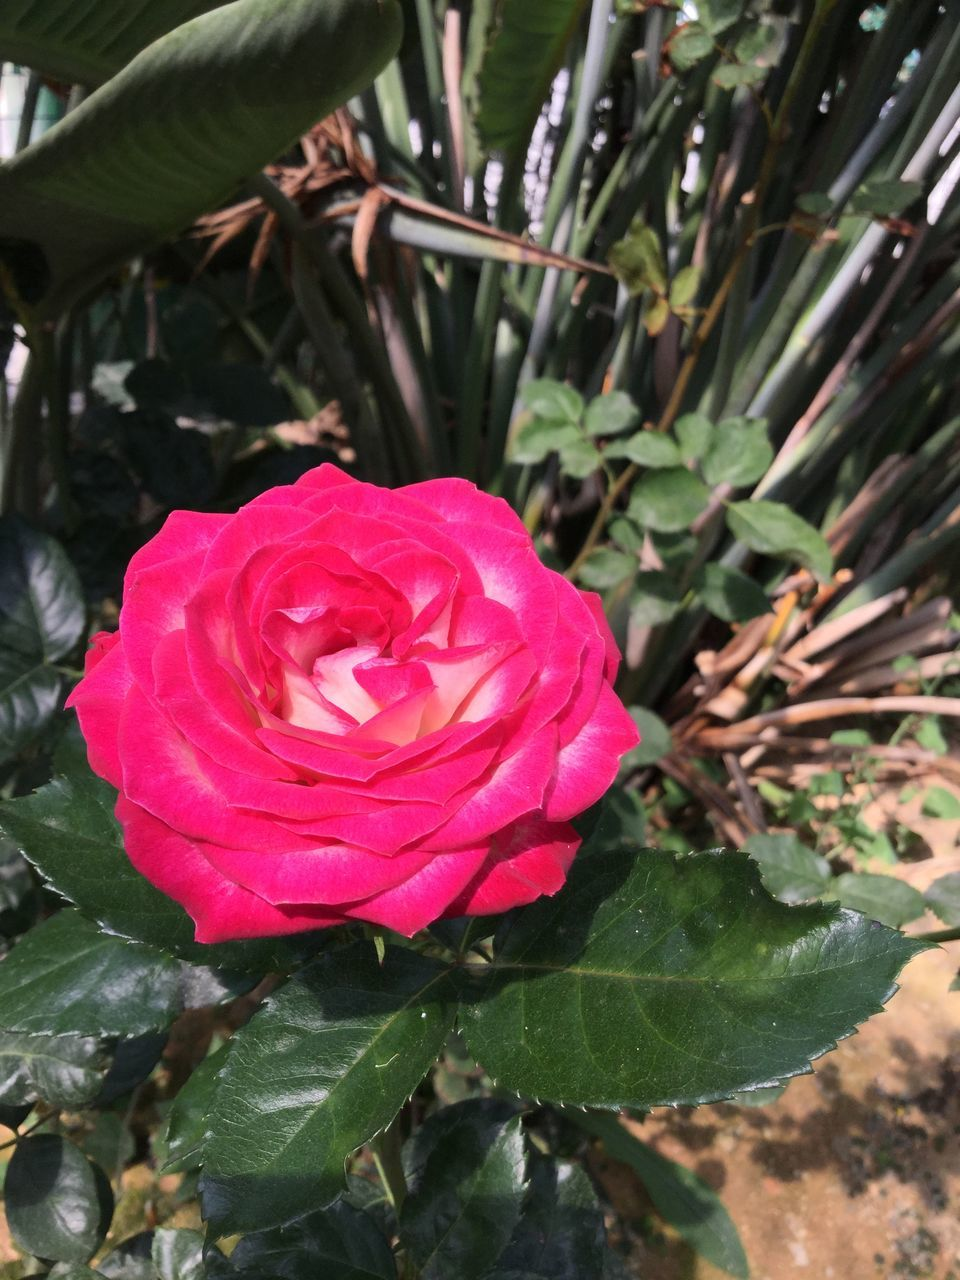 flower, petal, growth, leaf, nature, fragility, rose - flower, plant, flower head, beauty in nature, freshness, no people, blooming, day, close-up, red, outdoors, water